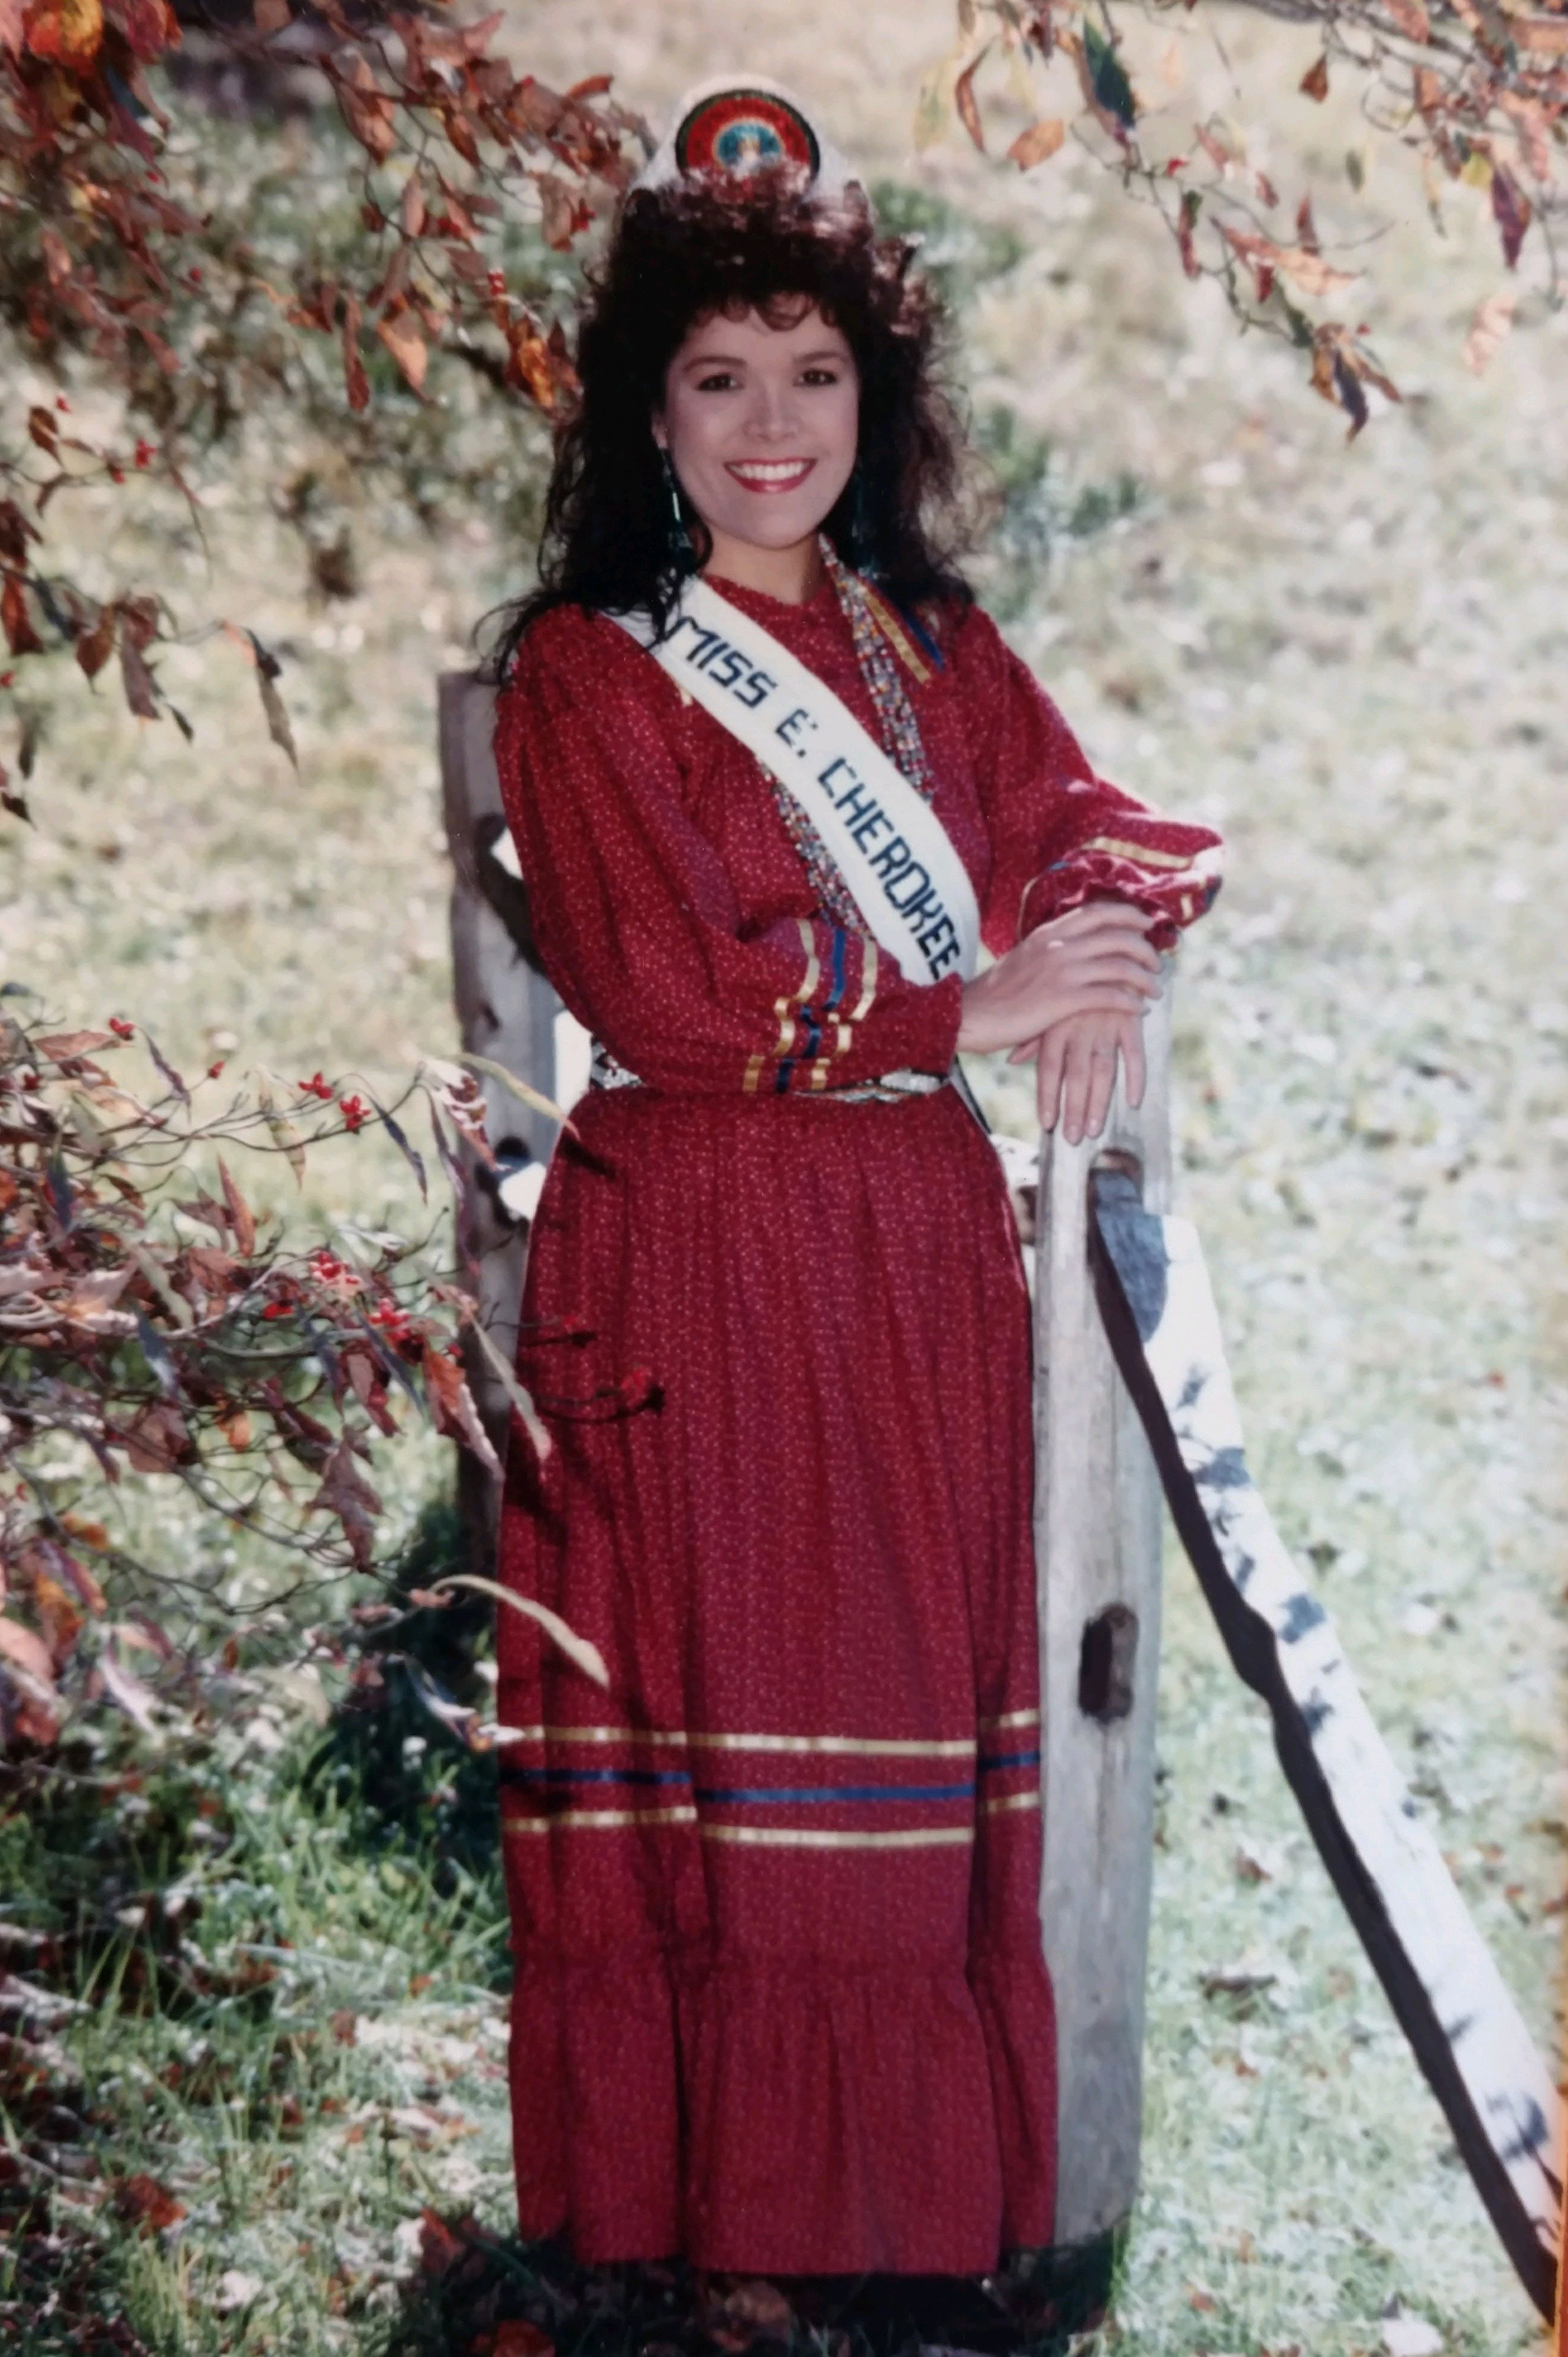 Lori Sanders was crowned Miss Cherokee in 1989. (Photo credit: Lori Sanders)